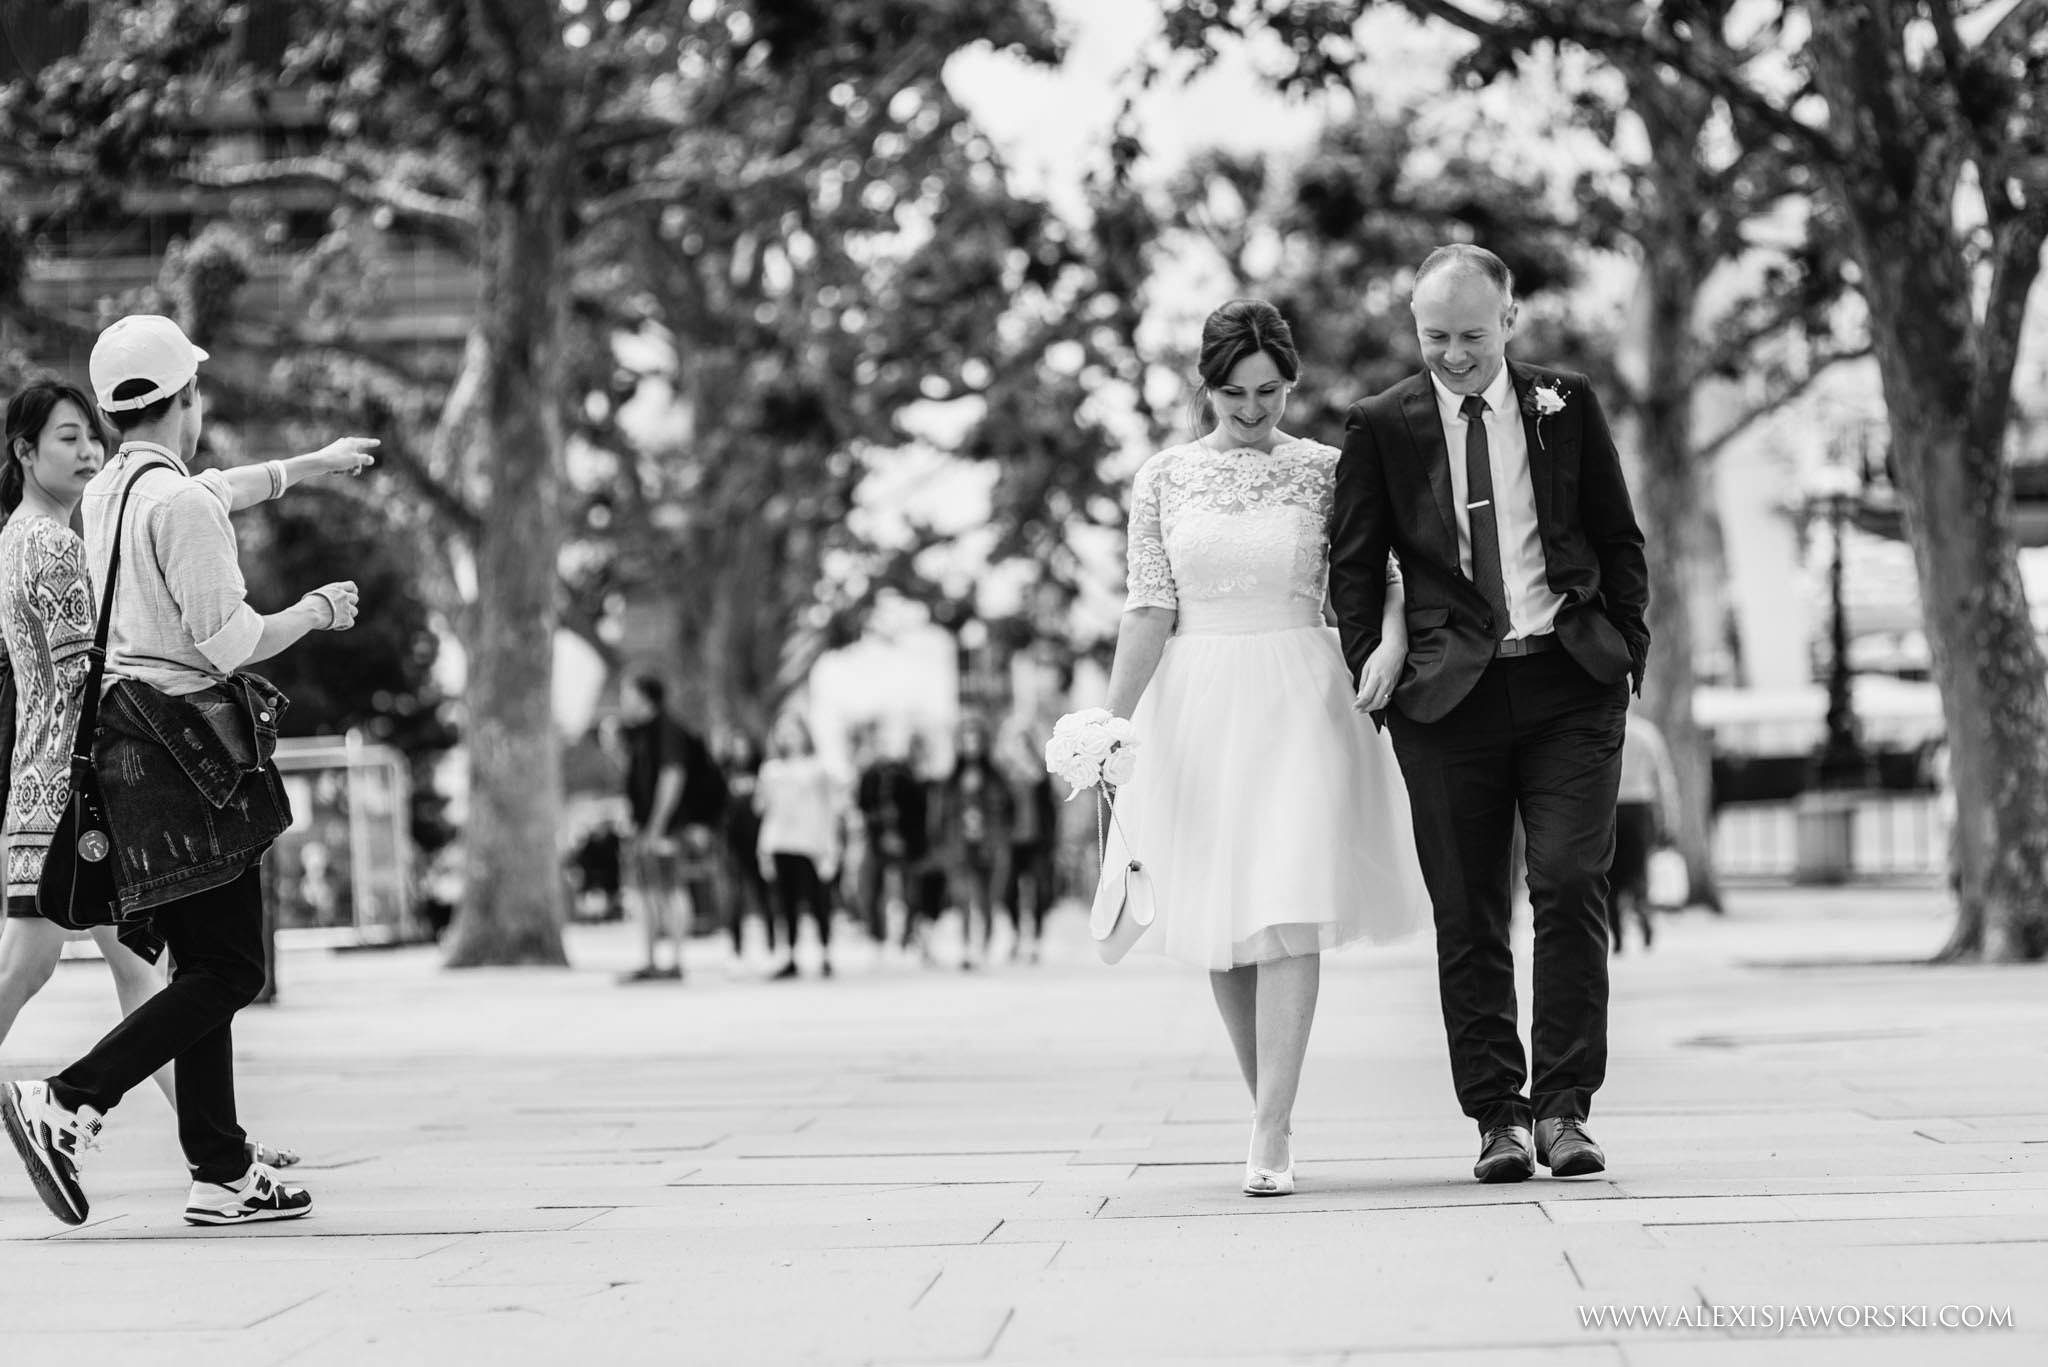 Casual black and white portrait of the bride and groom walking